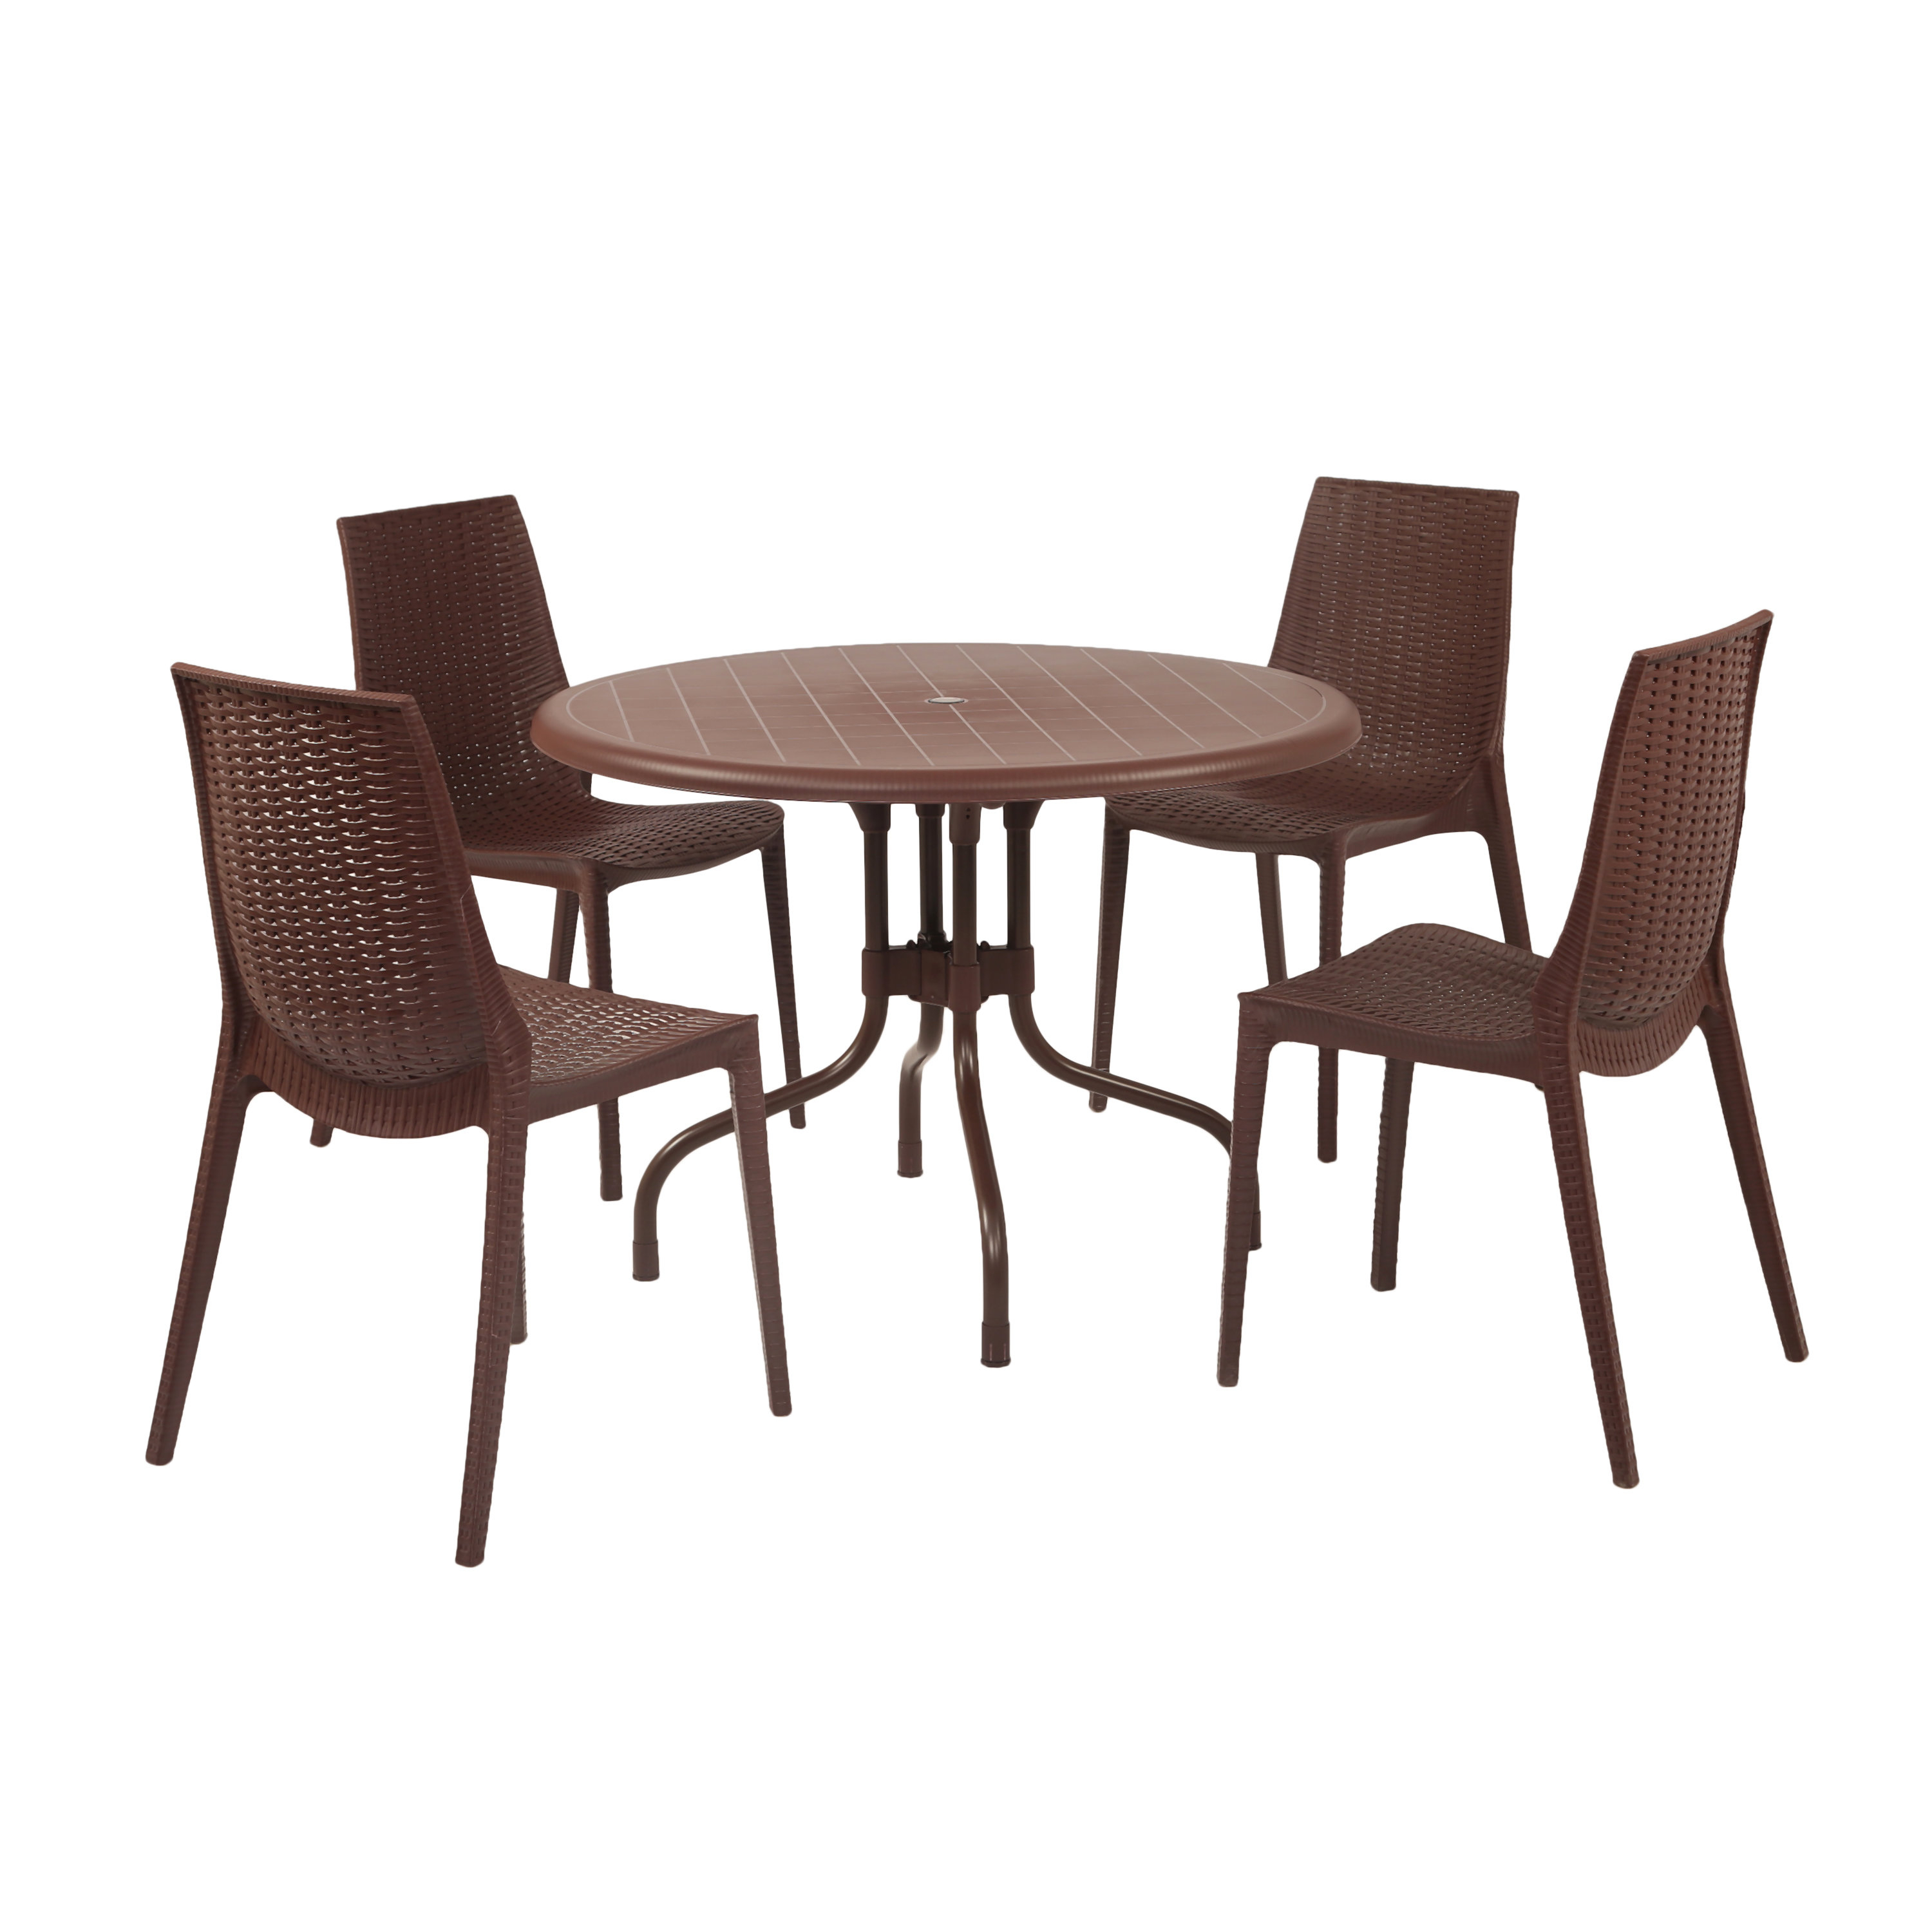 Wayfair In Current Miskell 3 Piece Dining Sets (View 23 of 25)